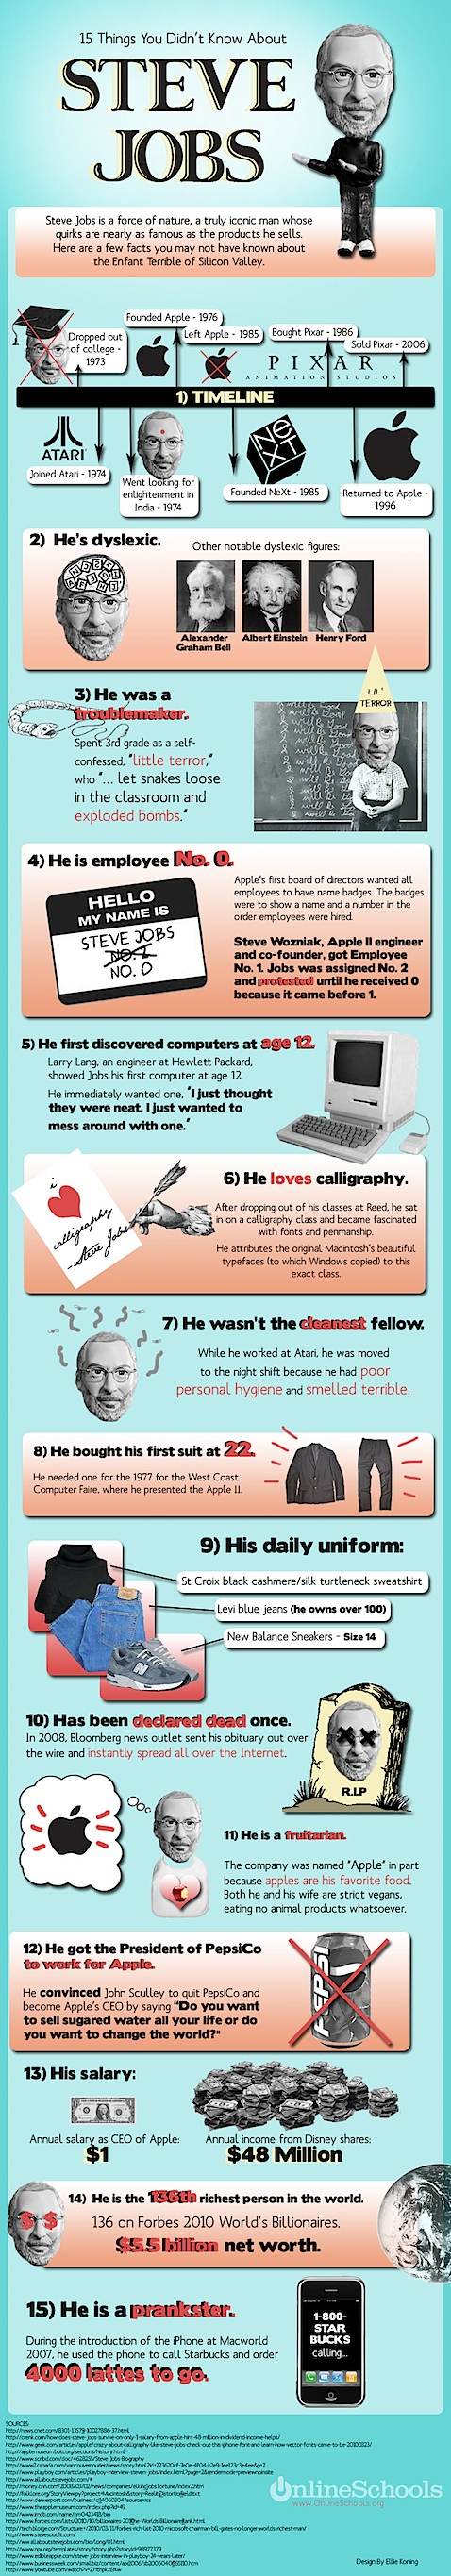 15 Things to Know About Steve Jobs - OnlineSchools.org